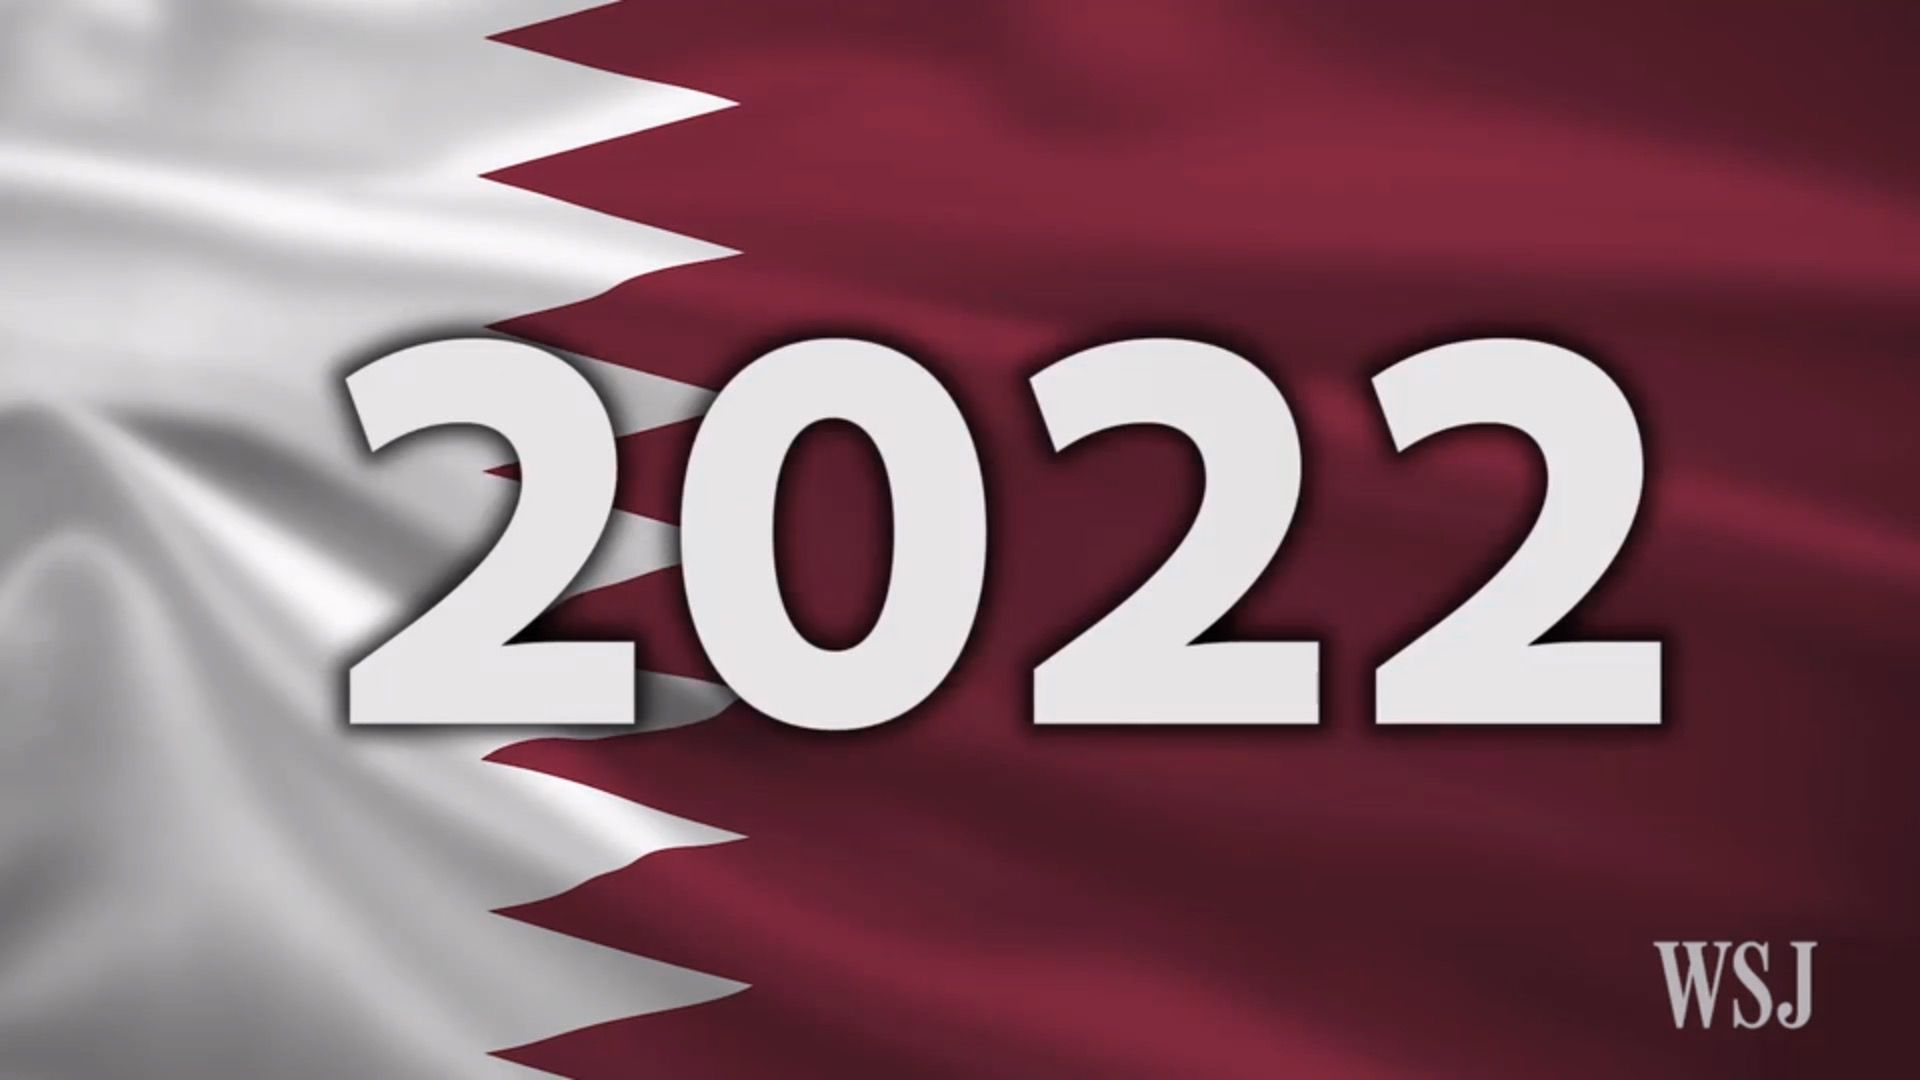 Blatter's Resignation Raises Concerns About Qatar's World Cup Prospects ➤ http://www.wsj.com/articles/qatar-stocks-fall-on-fifa-world-cup-concerns-1433316100 ②⓪①⑤ ⓪⑥ ⓪⑤